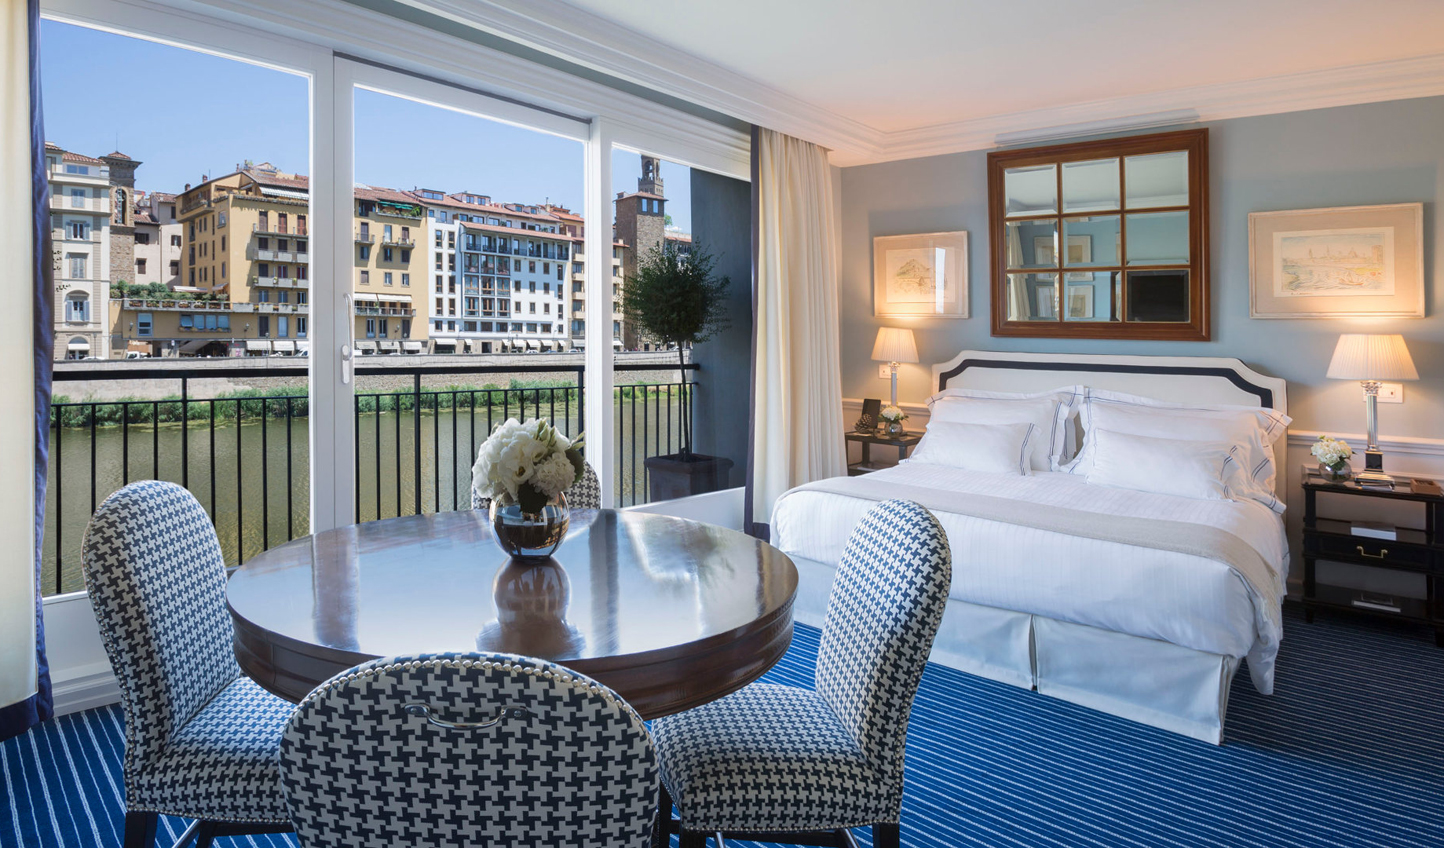 Elegant suites boasting beautiful views over the Arno River